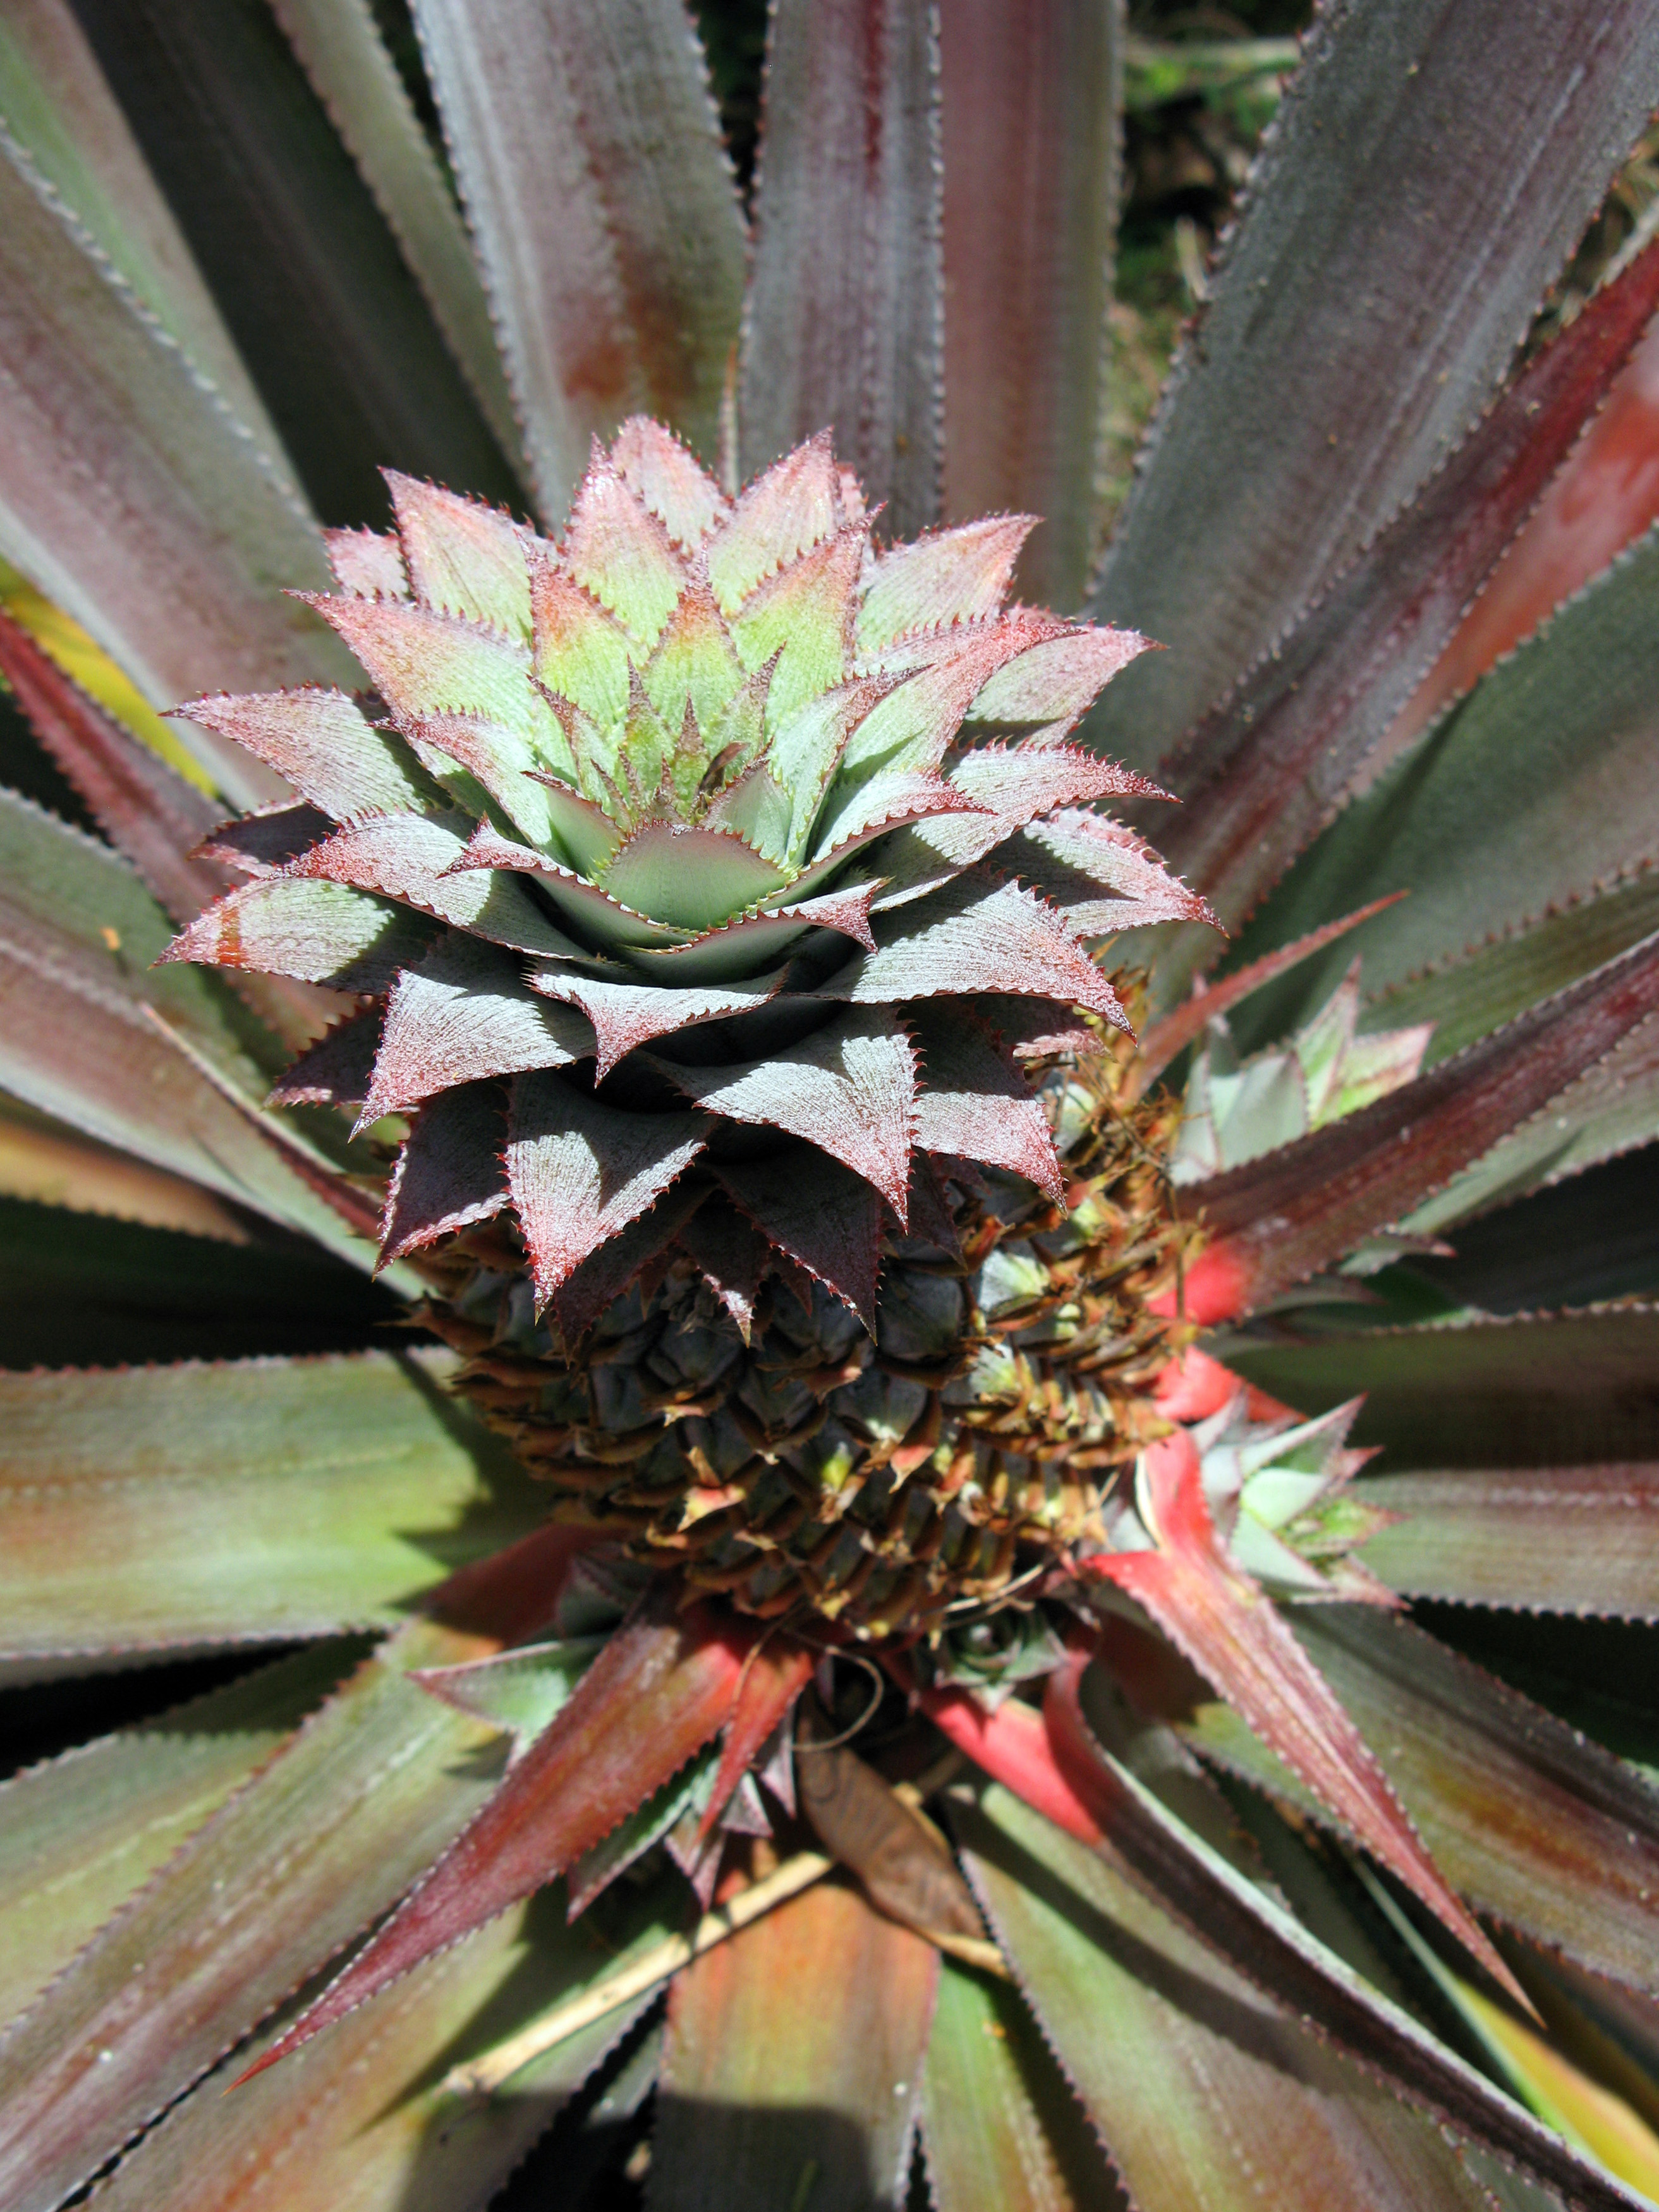 Pineapple, Ananas comosus, growing on the plant viewed from above with its multiple fruit of coalesced berries